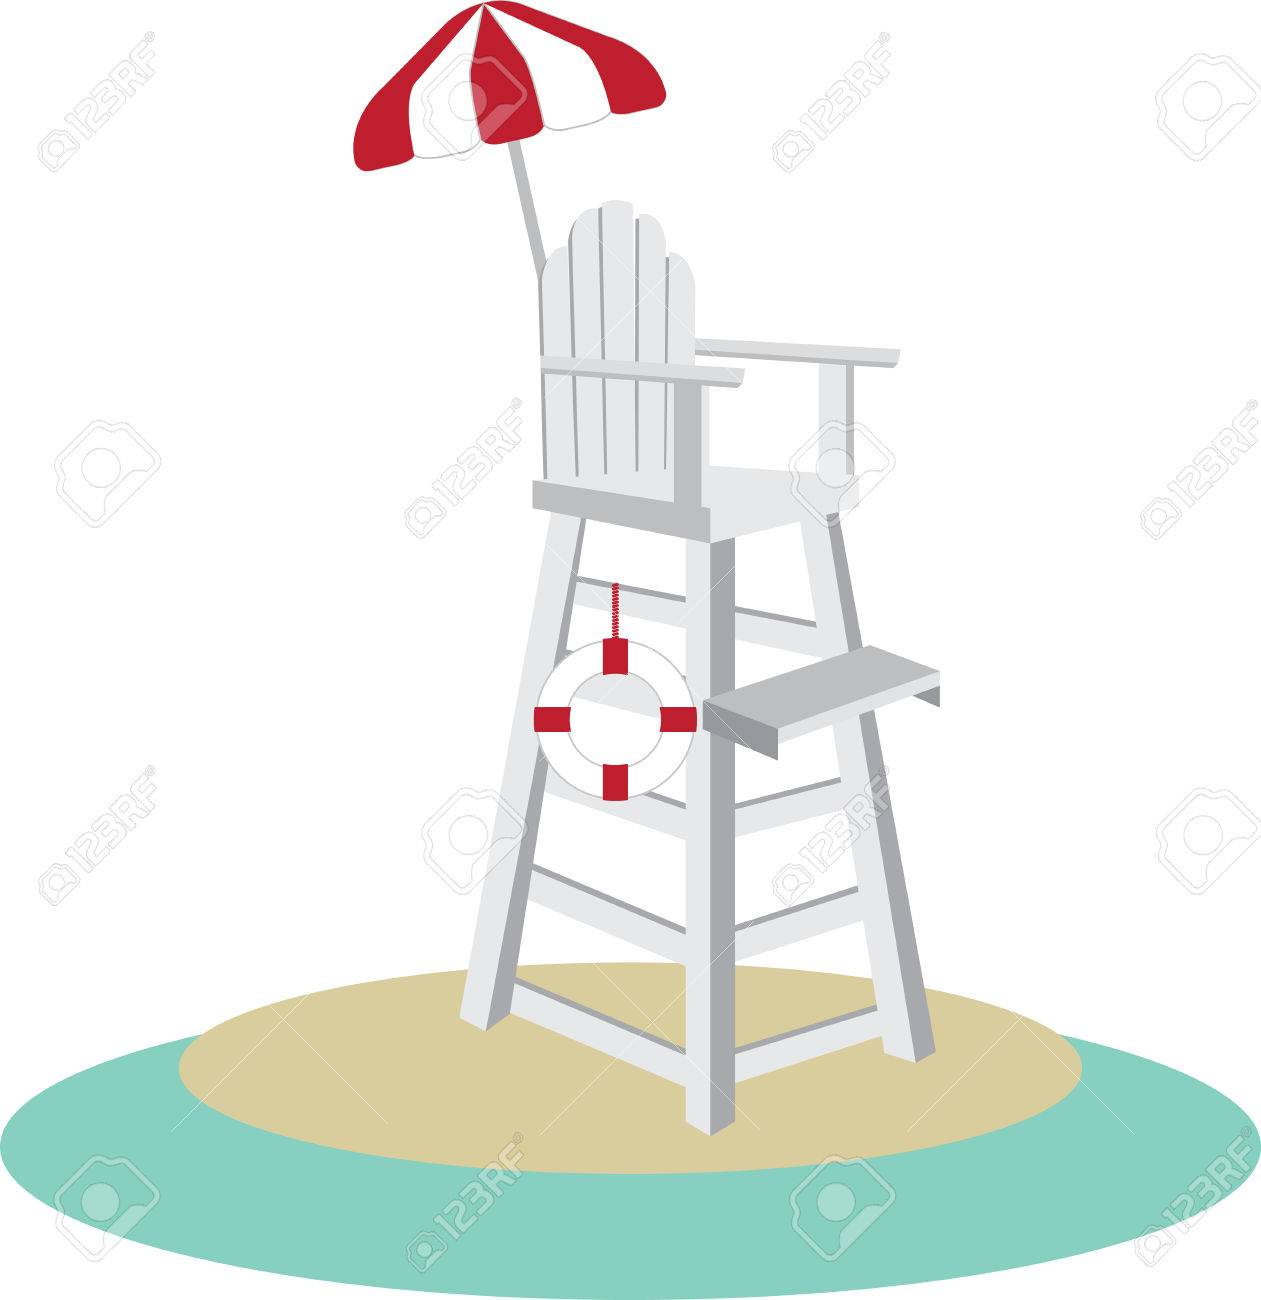 Tall lifeguard chair with a red and white umbrella..